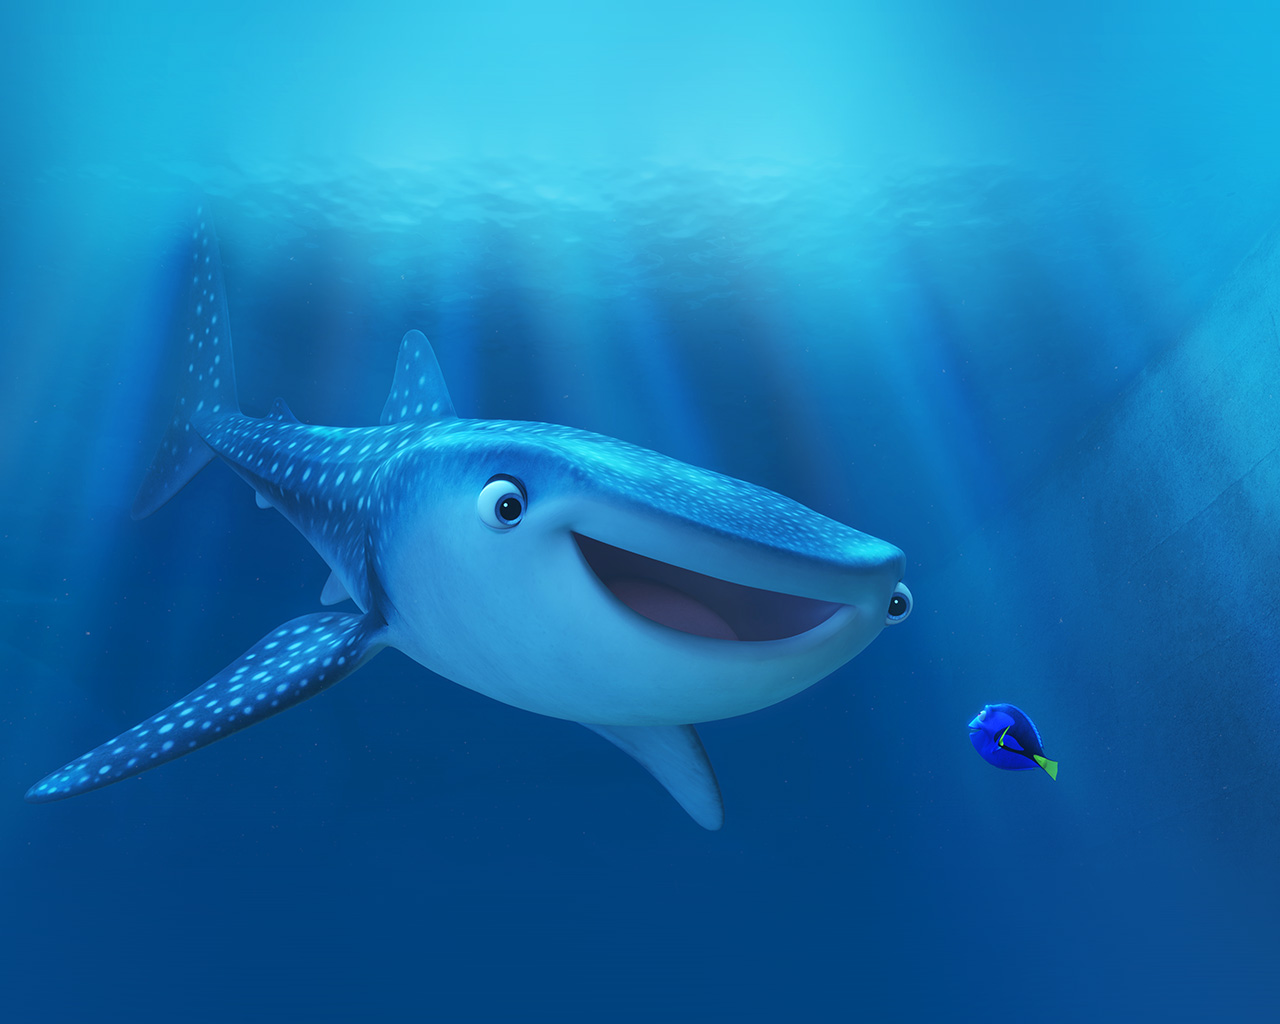 evaluation essay on finding nemo Personality traits, psychology - finding nemo: psychological profiles of its characters.